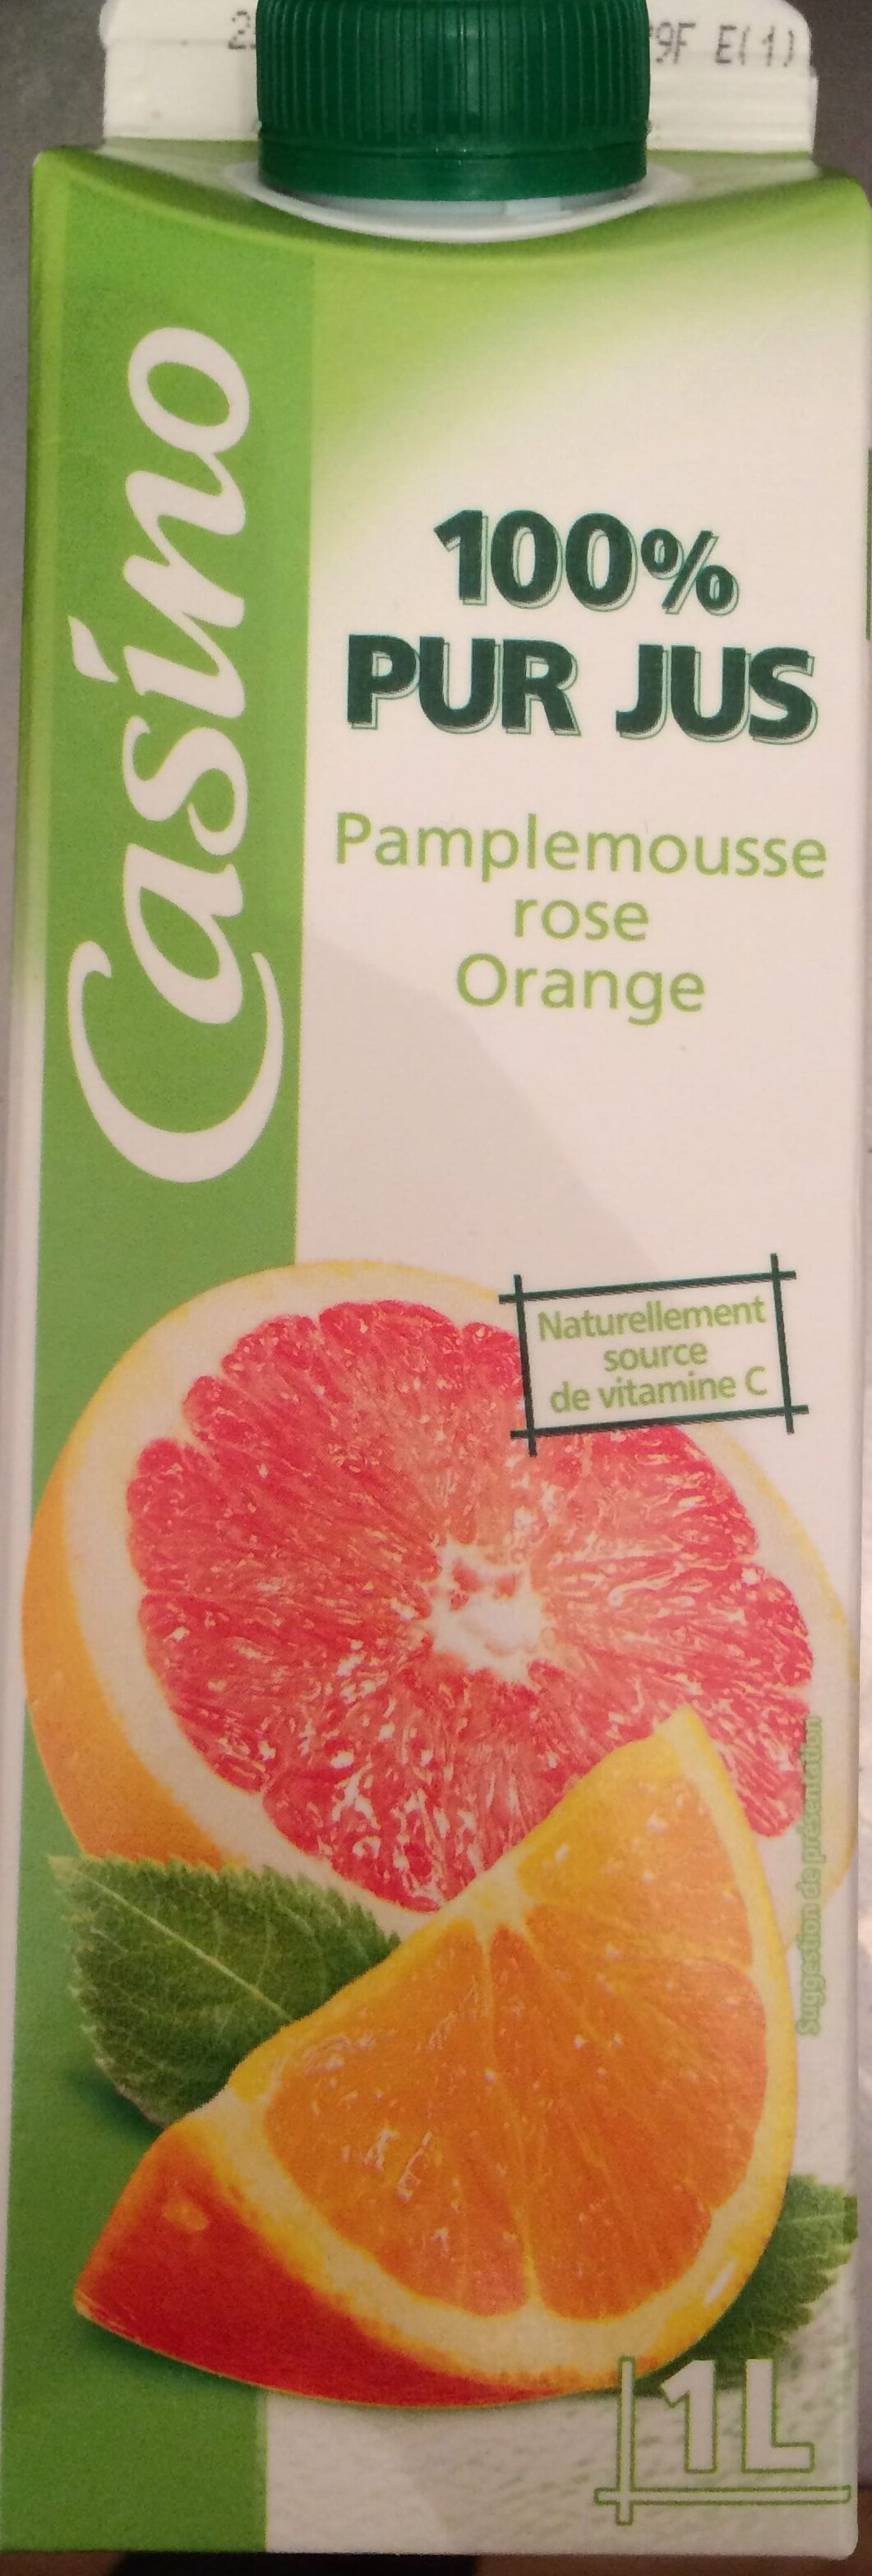 100% Pur Jus Pamplemousse rose Orange - Product